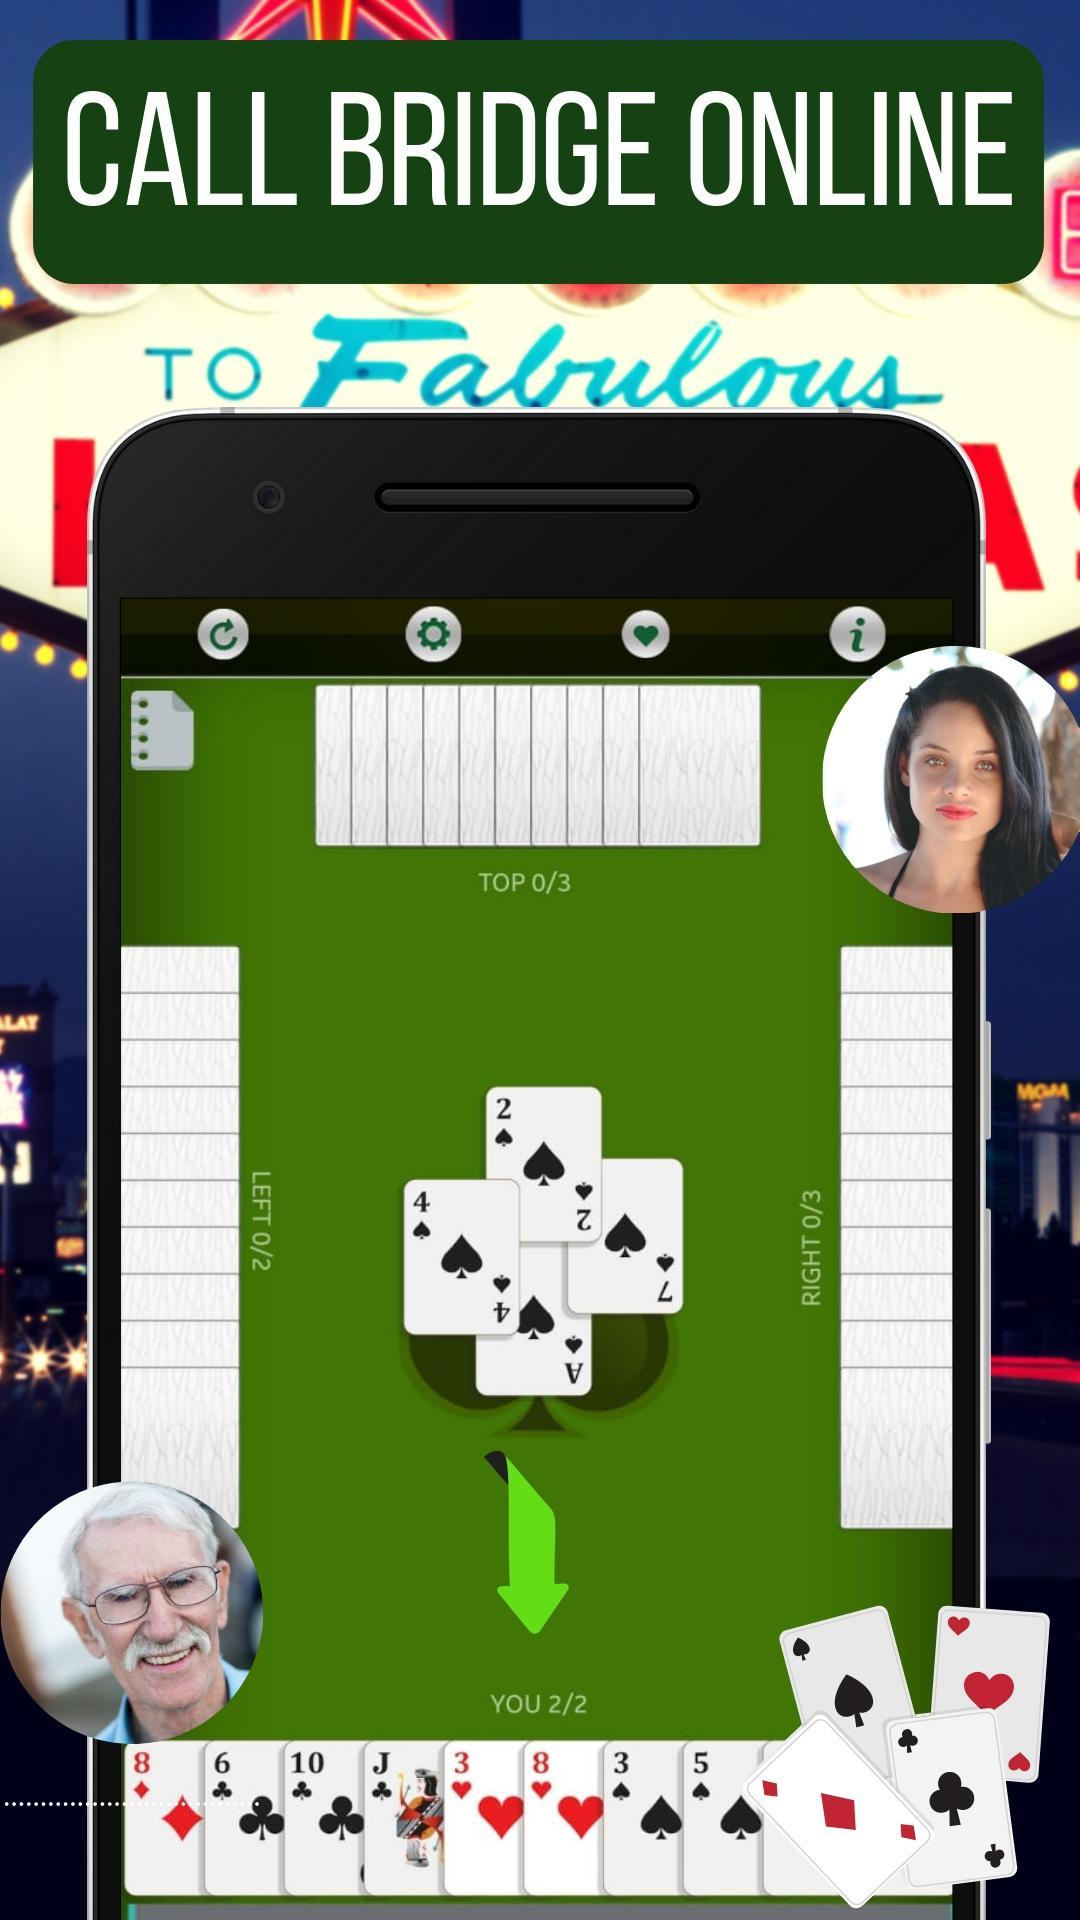 spade trump card game  Ace of spades - Trump card for Android - APK Download